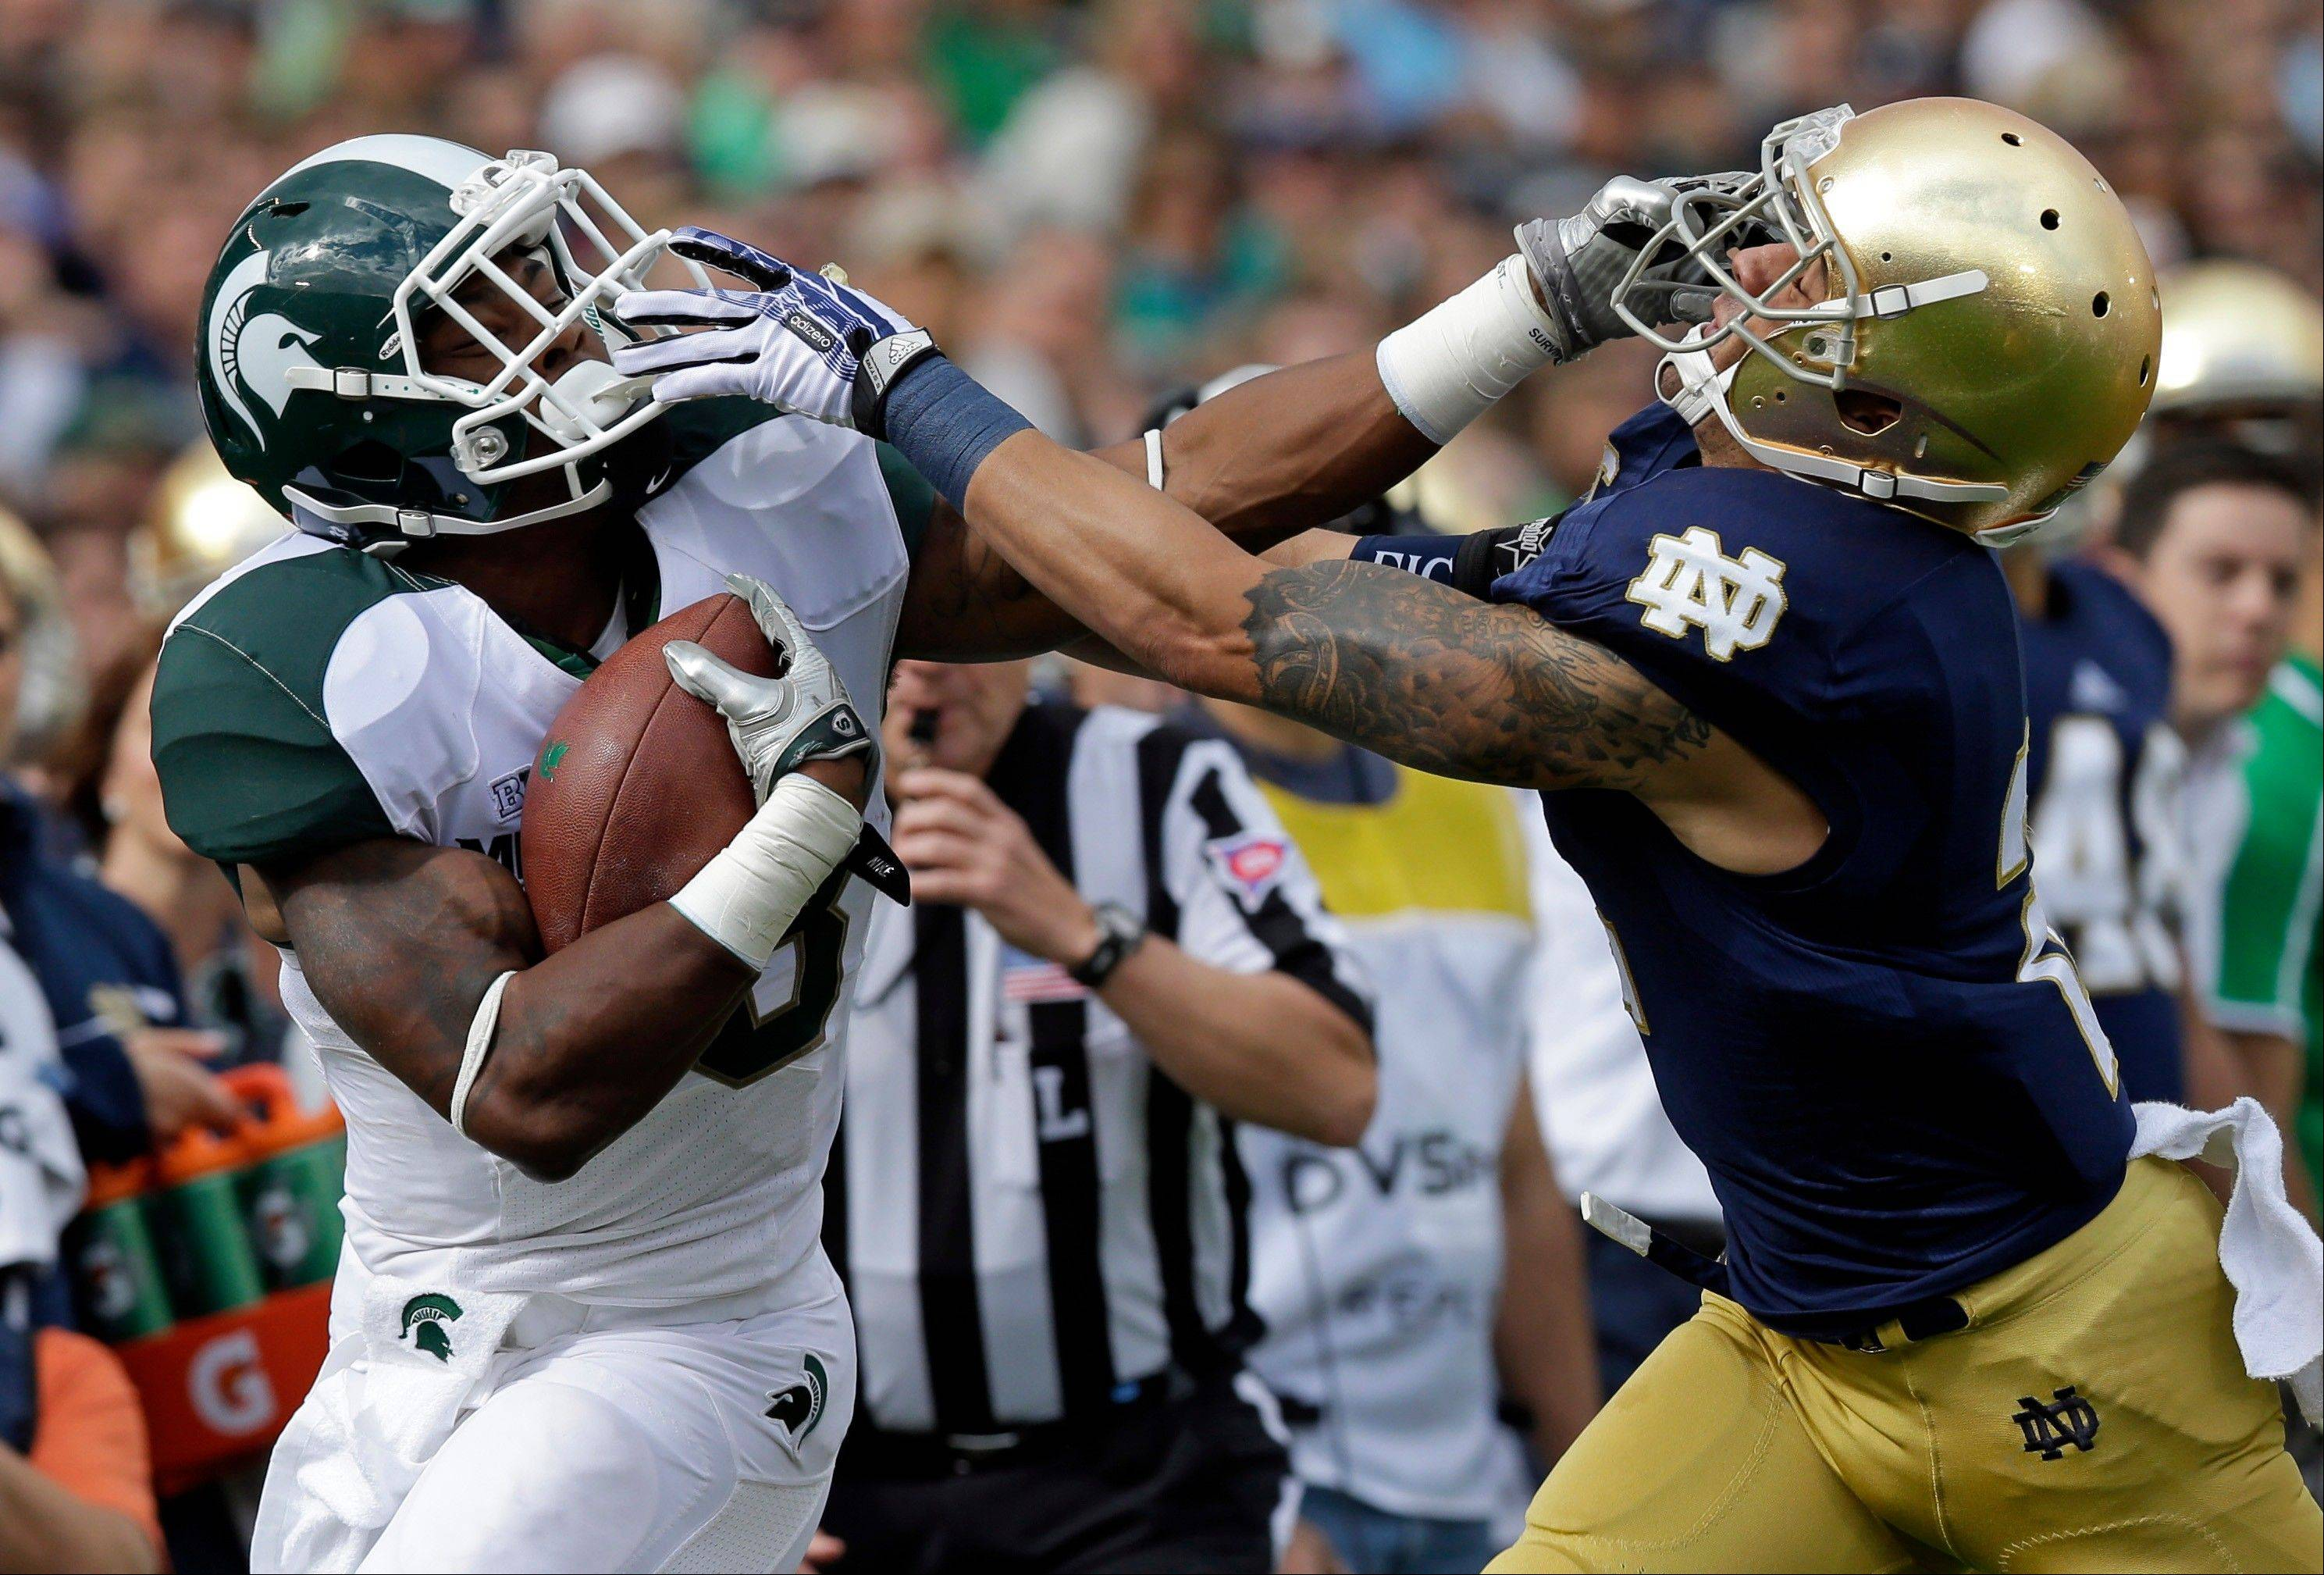 Michigan State running back Jeremy Langford, left, battles with Notre Dame cornerback Bennett Jackson to pick up yardage during the first half Saturday's in South Bend, Ind.